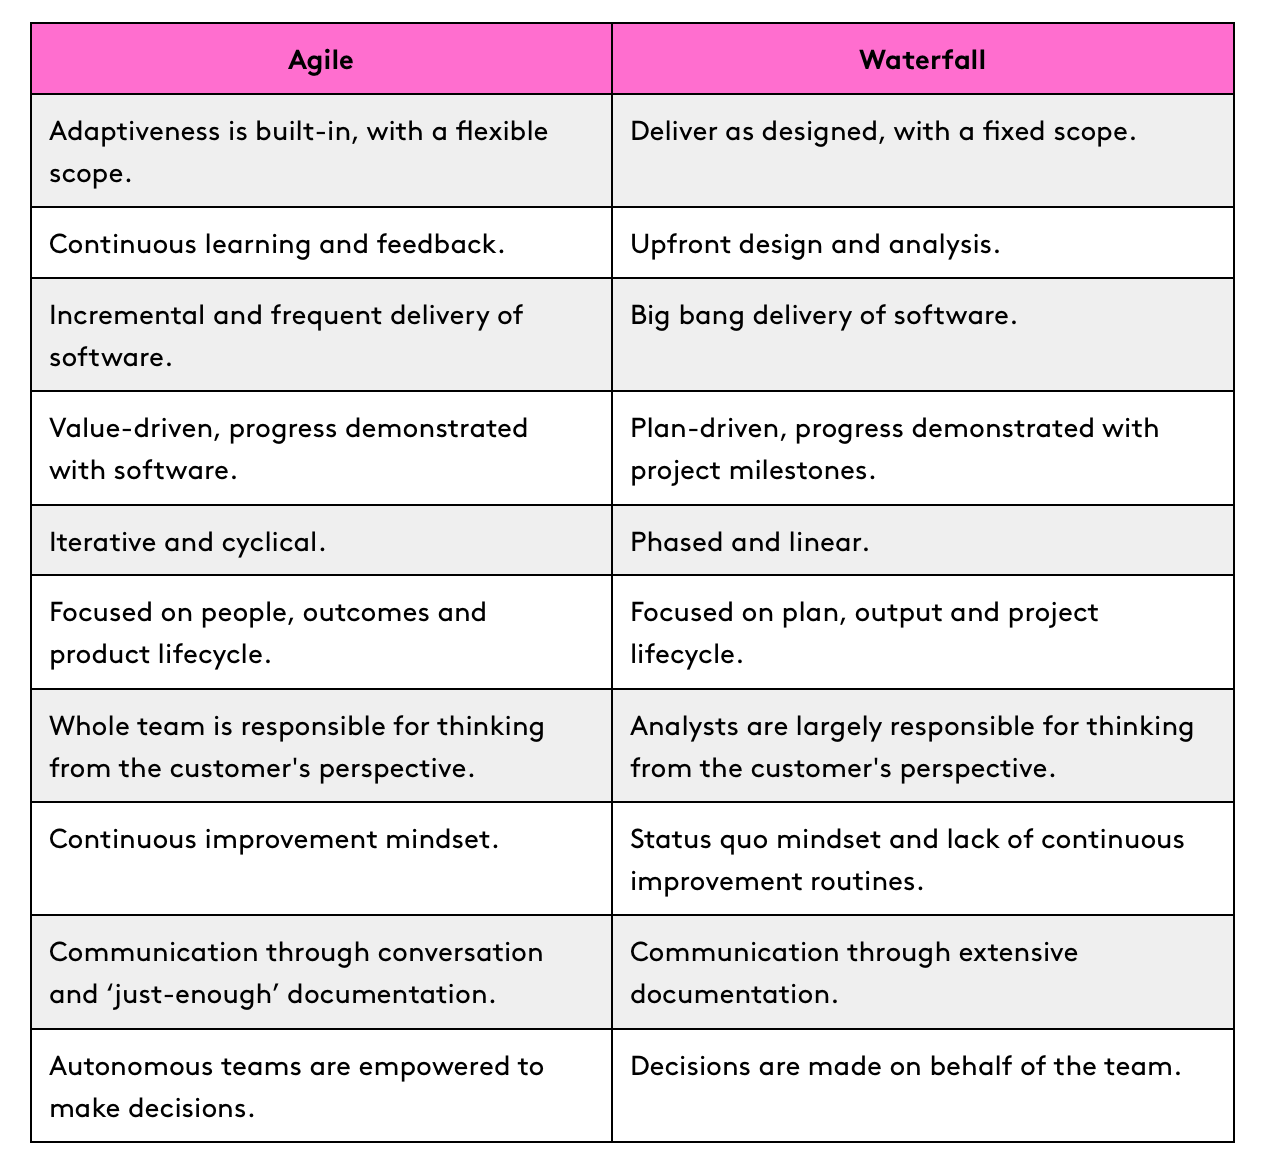 Agile Vs Waterfall - Table Comparison - AND Digital